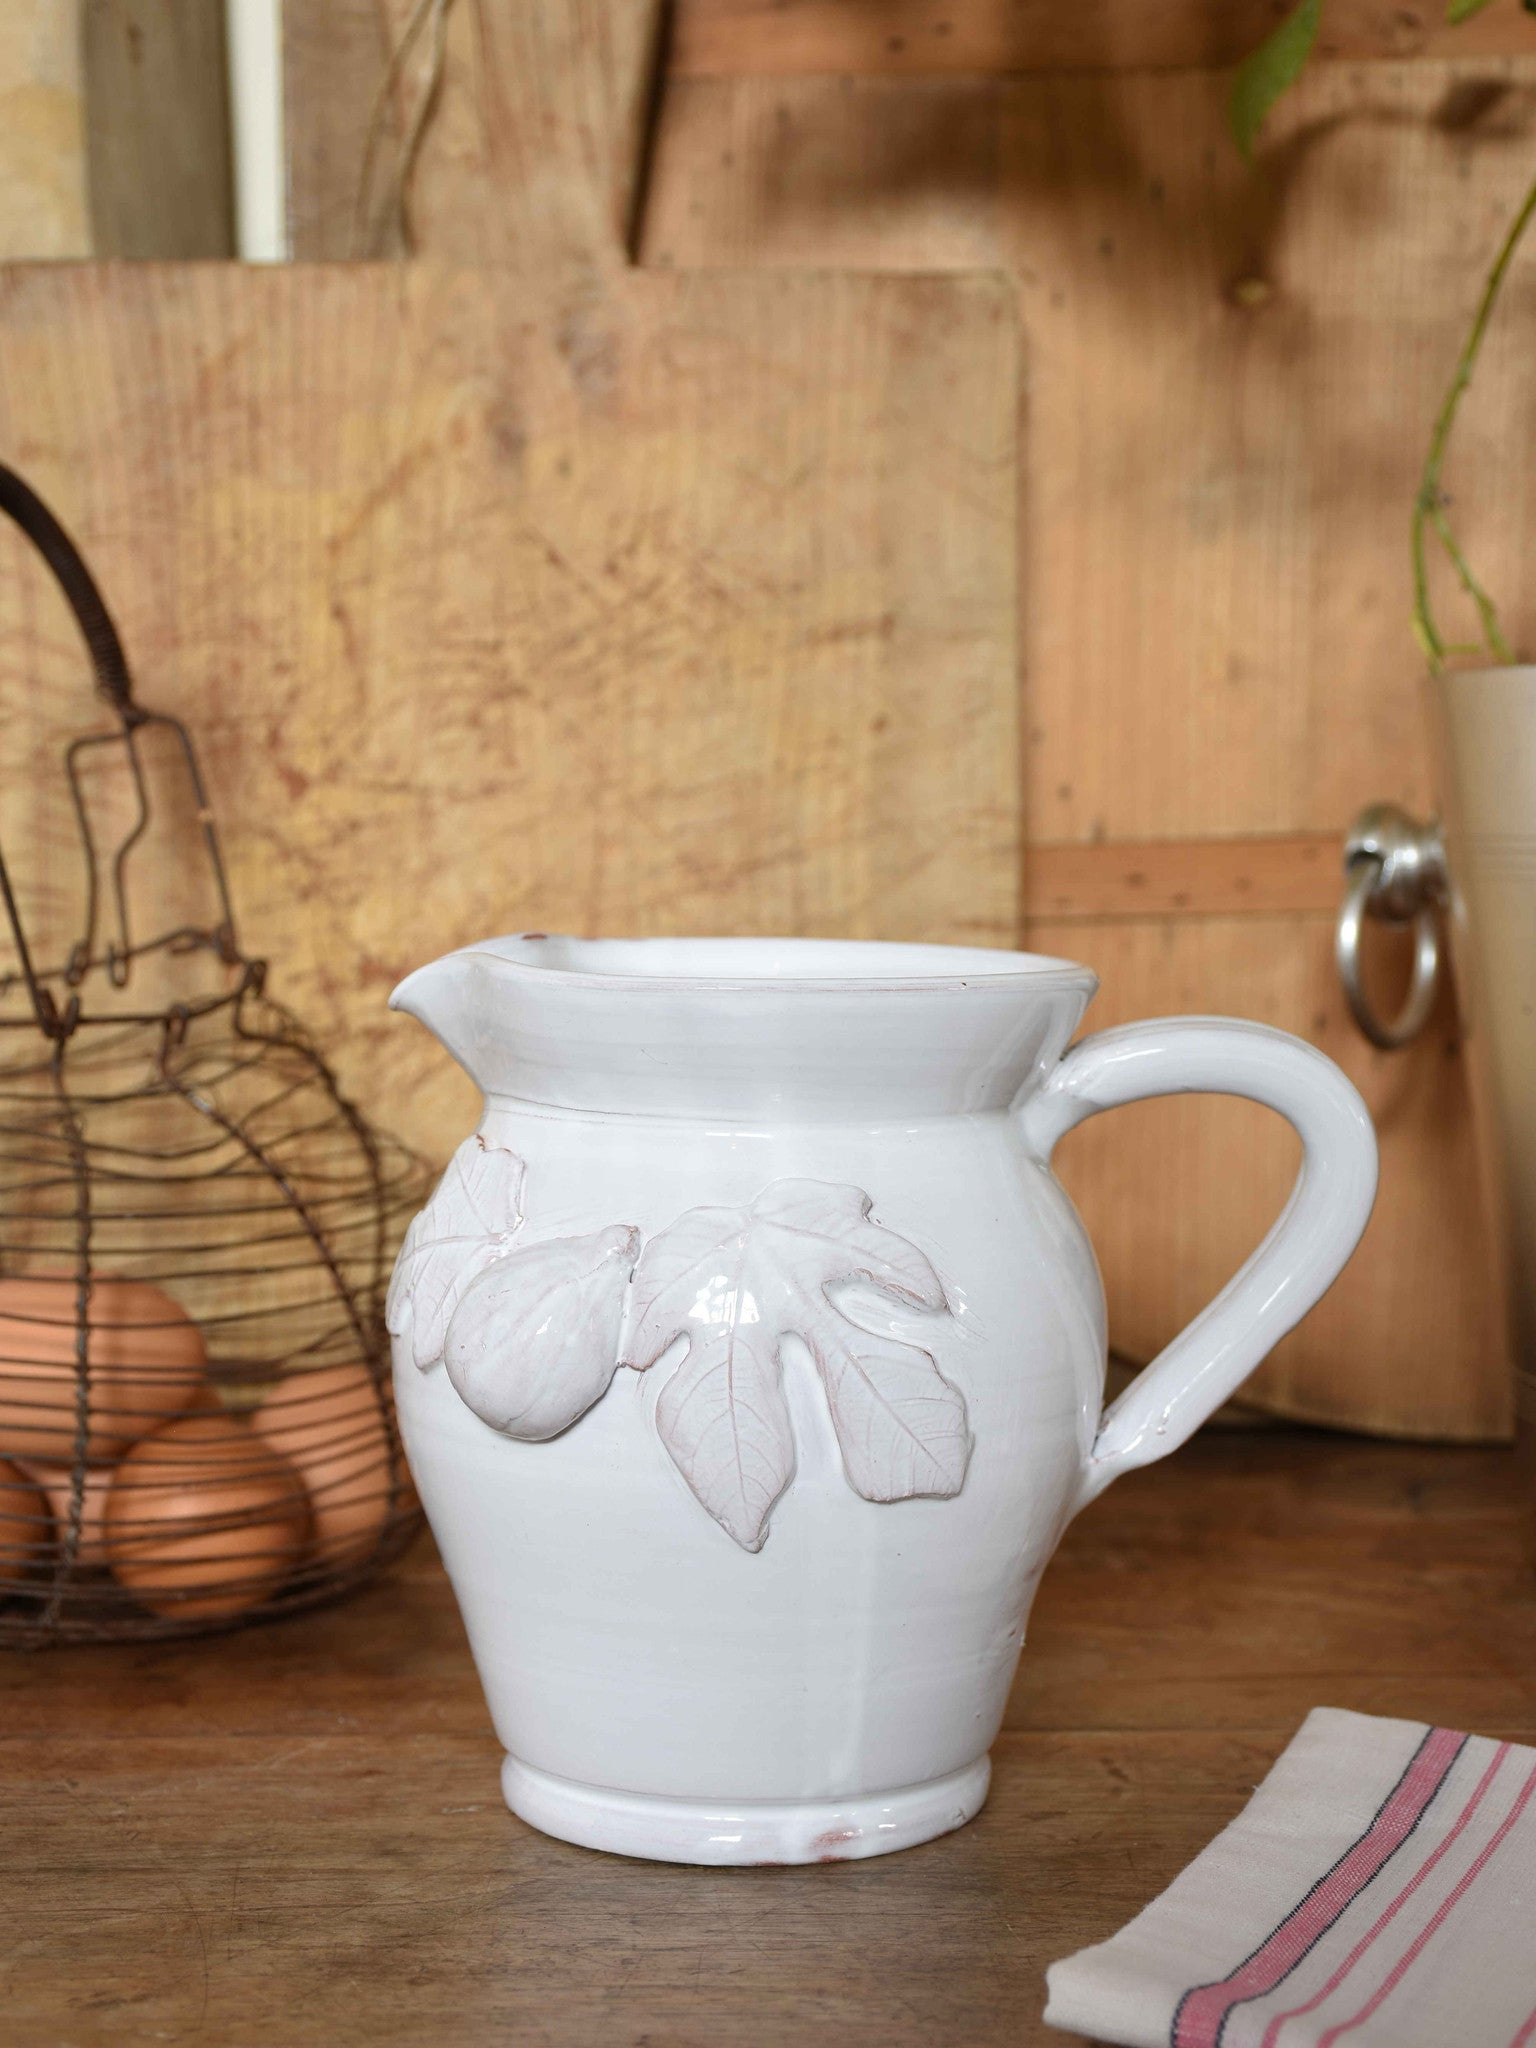 Ceramic jug with figs